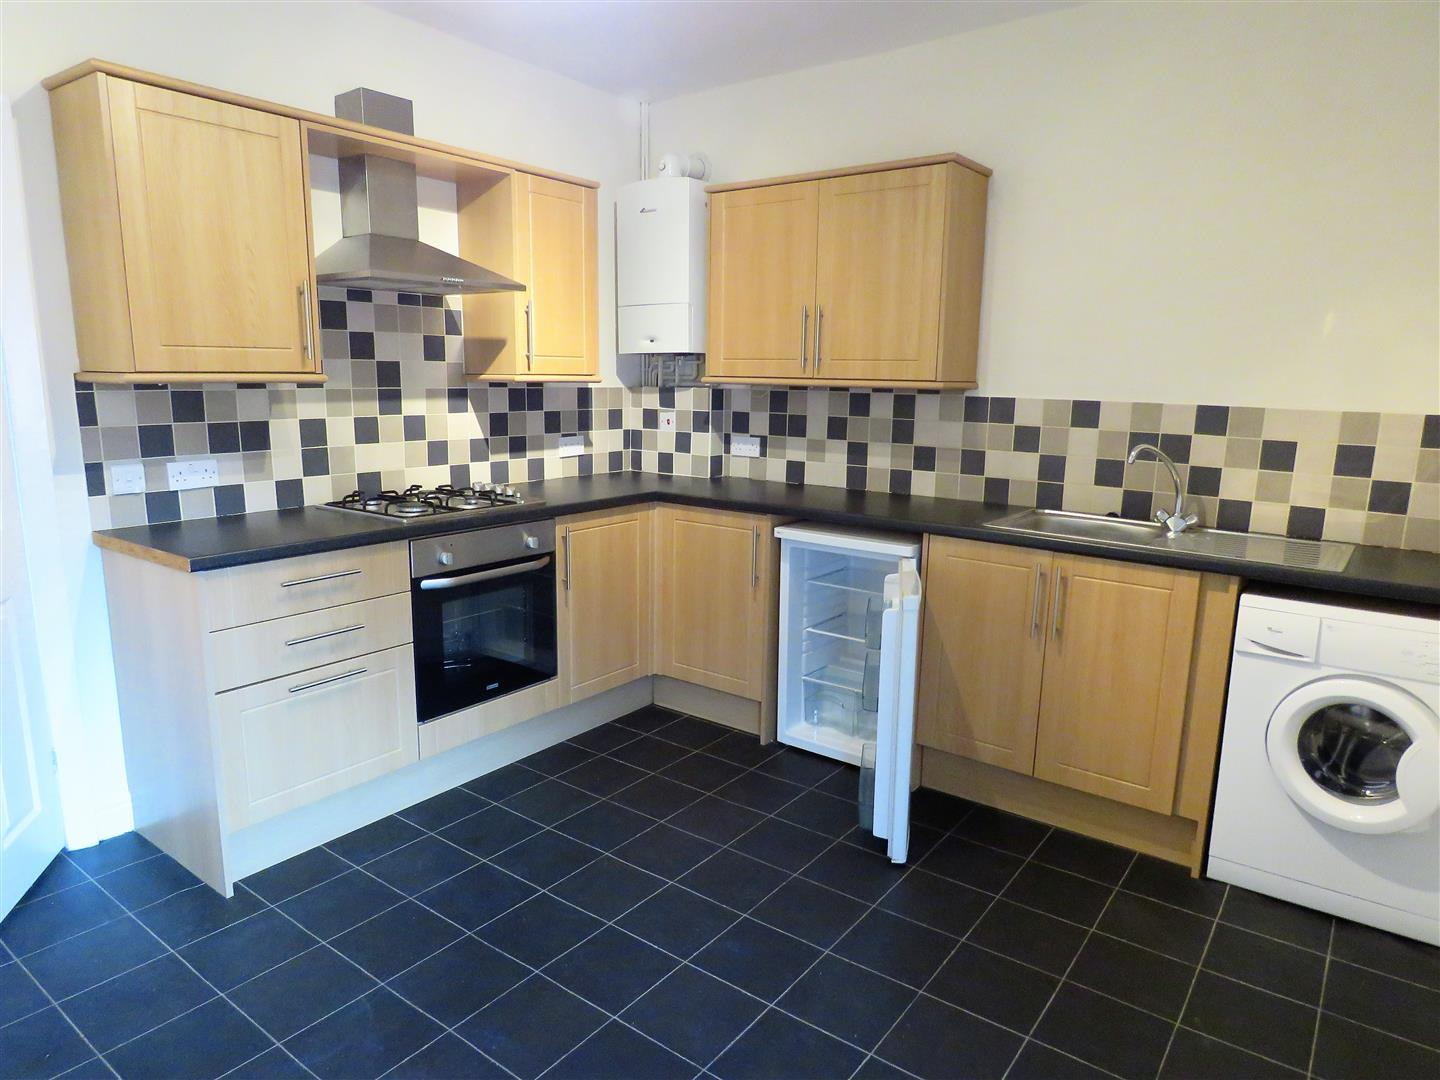 283A Middlewood RoadSheffield